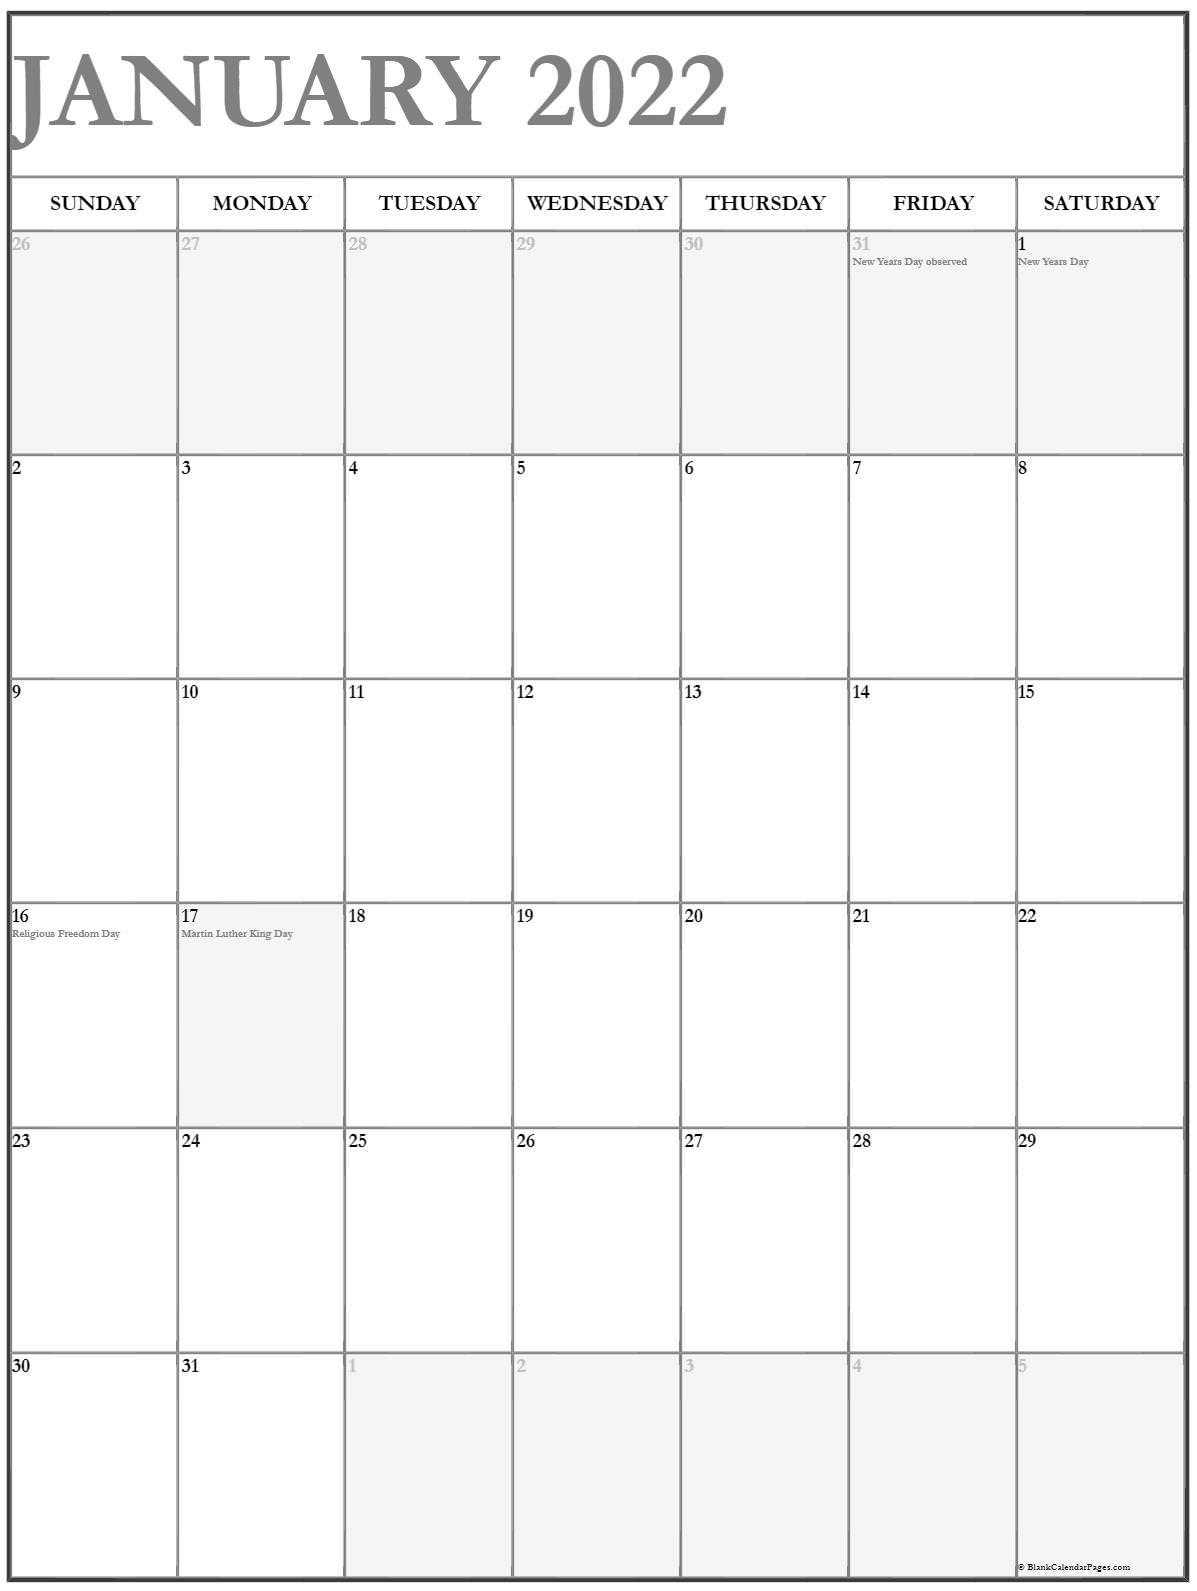 January 2022 Vertical Calendar | Portrait pertaining to 2022 Day To Day Calendars For Men